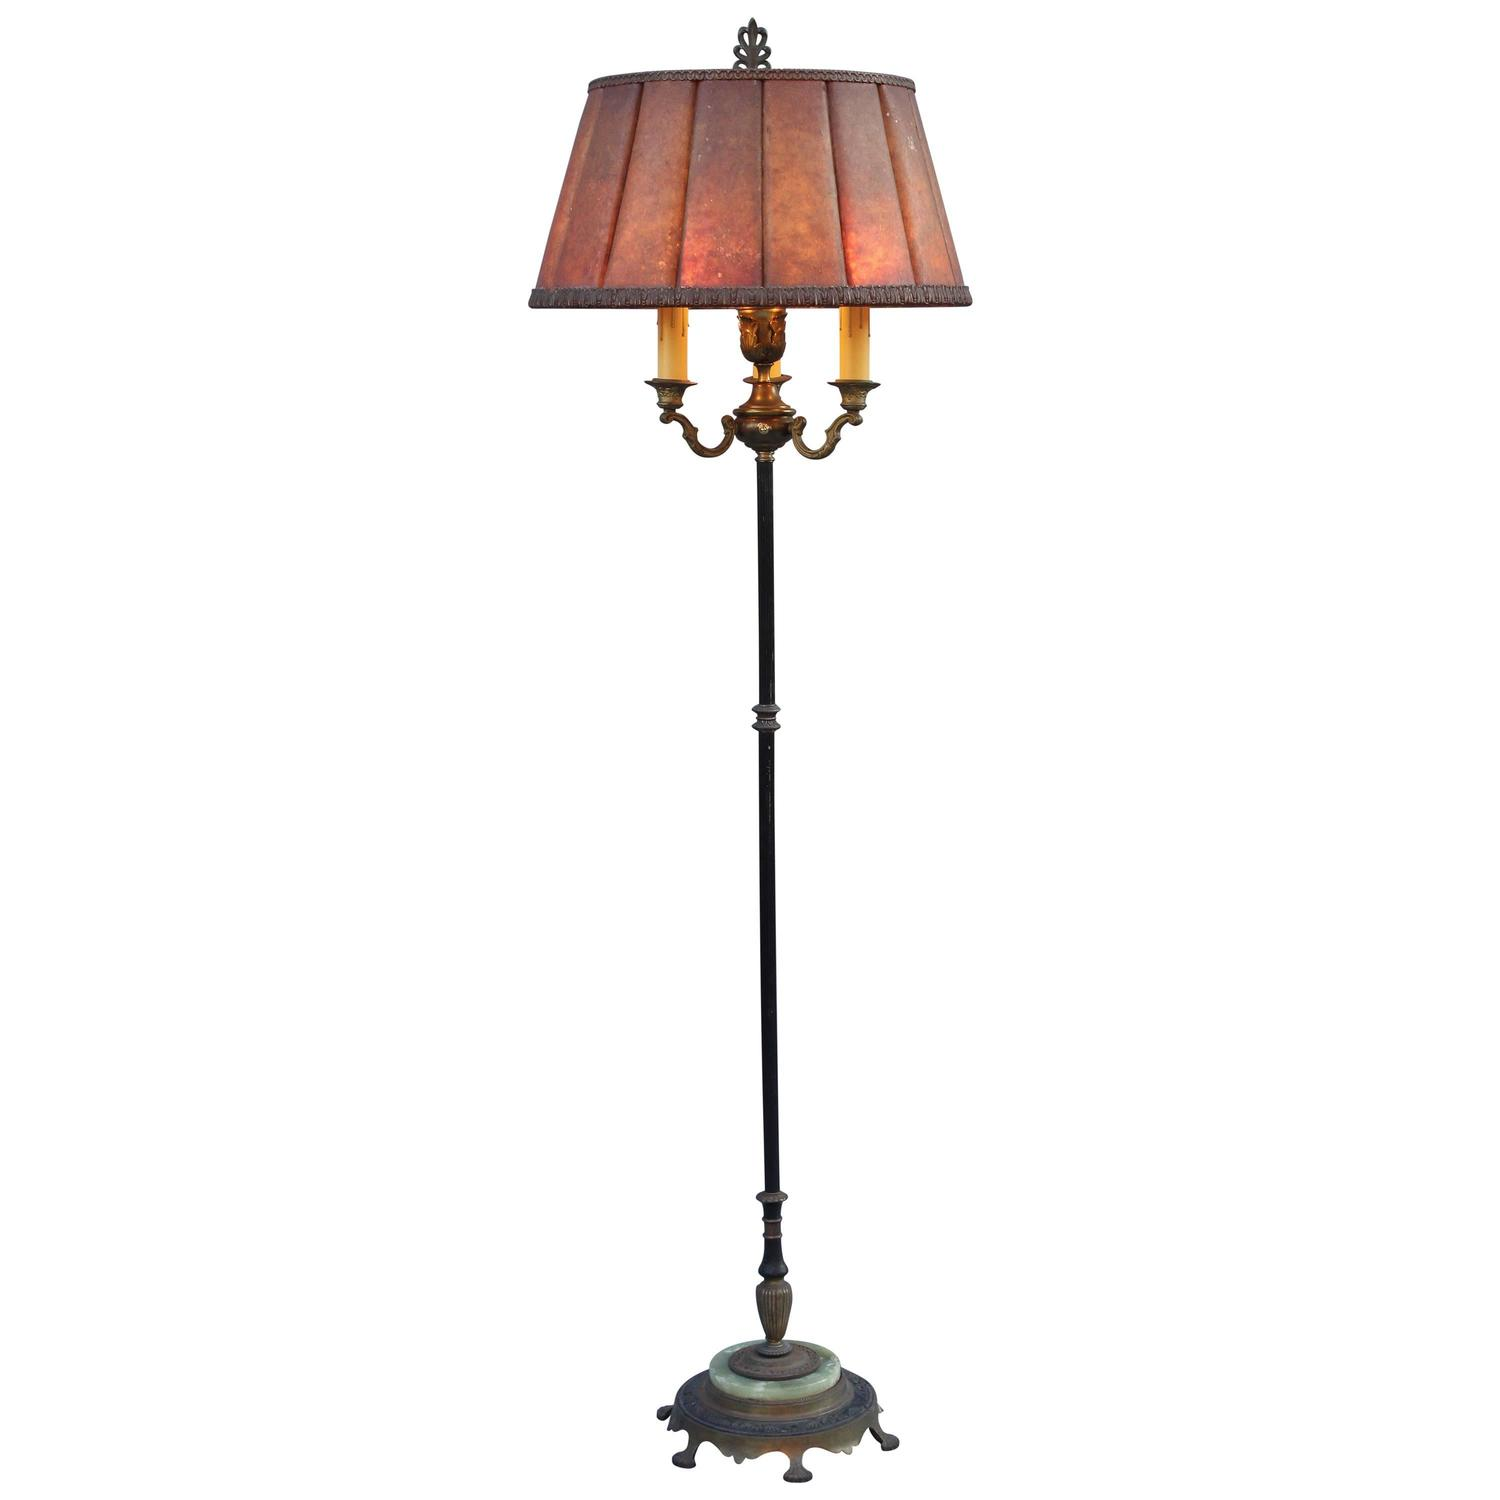 1920s floor lamp with original mica shade for sale at 1stdibs for 1920s floor lamps